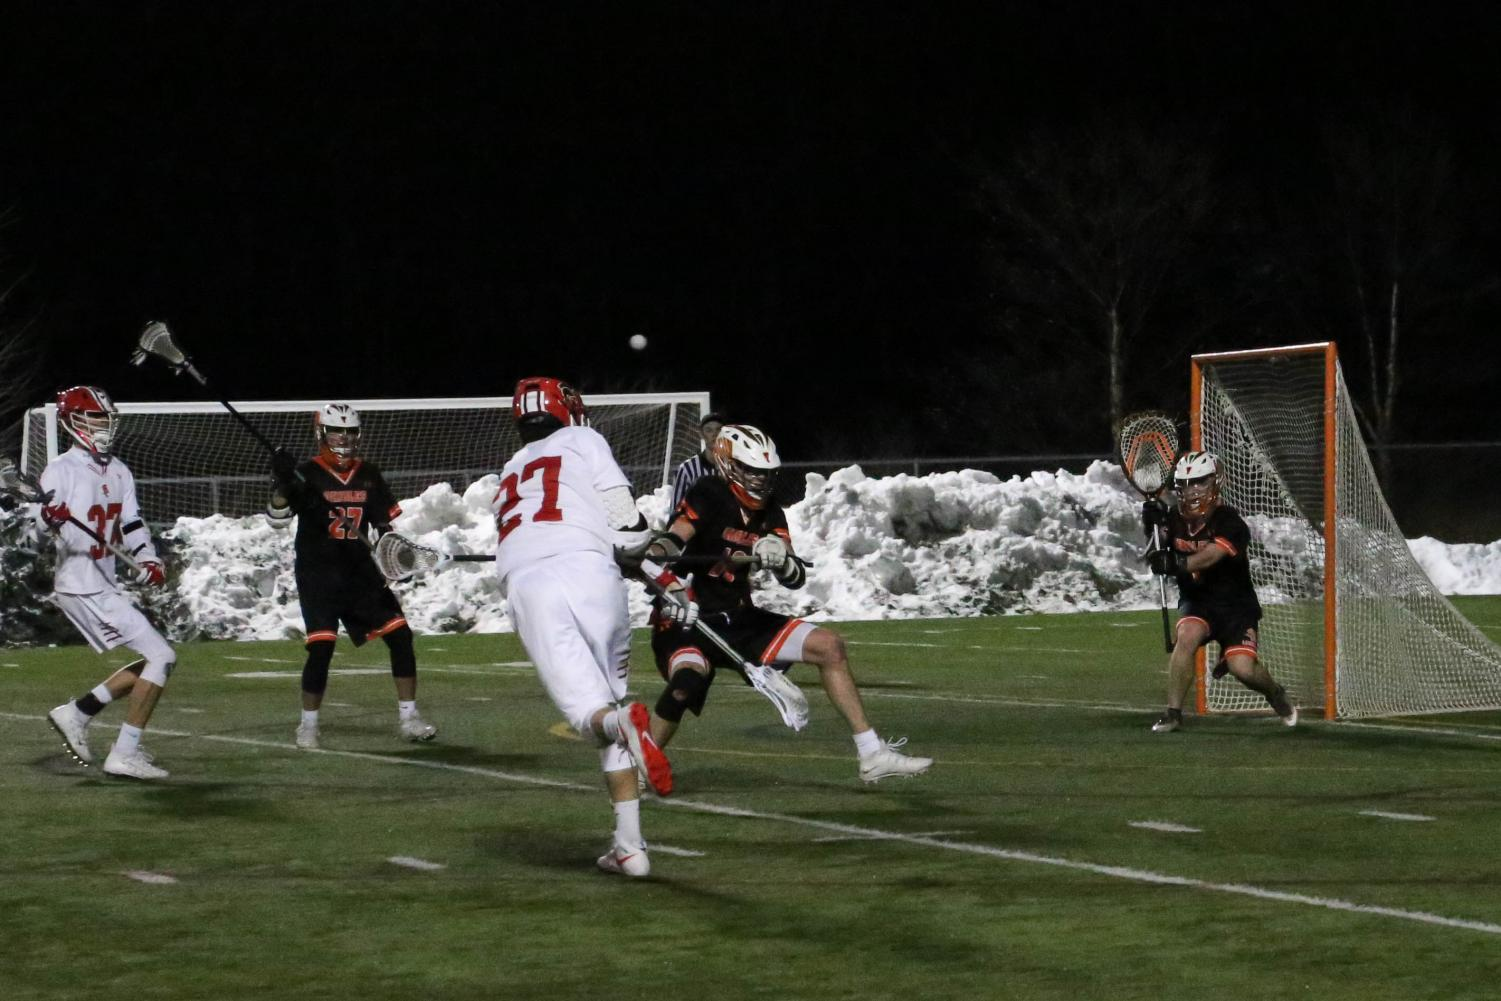 Senior Captain Eric Weber whips ball on close ranged shot.